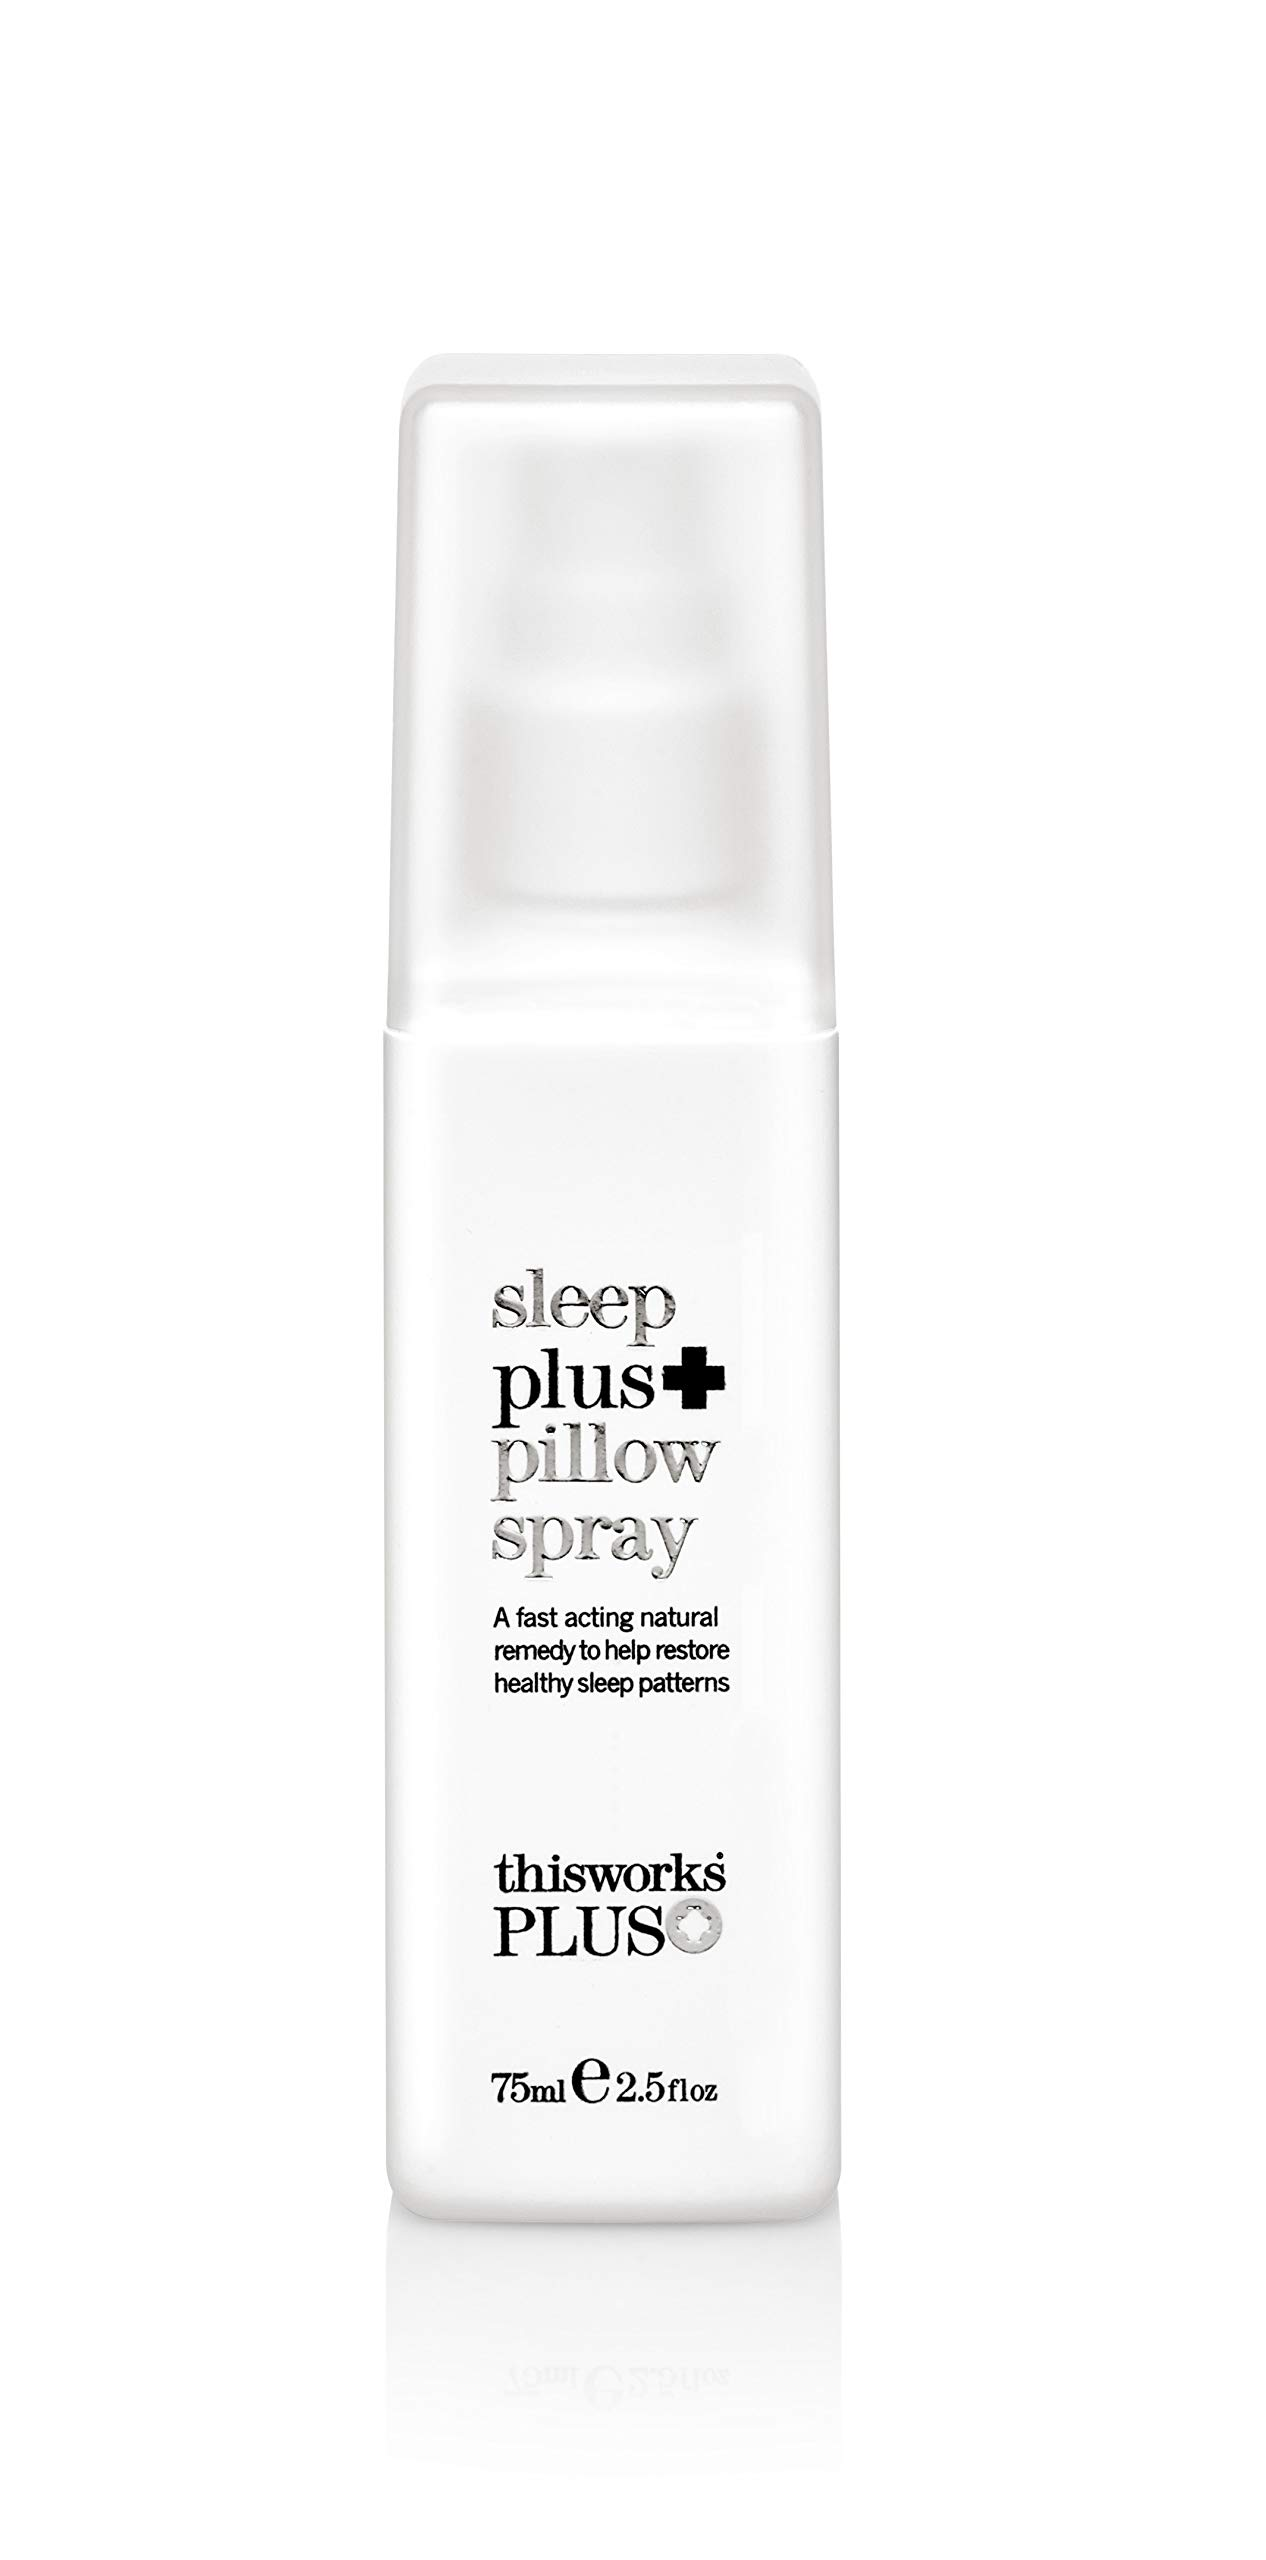 ThisWorks Sleep Plus Pillow Spray, 75 ml - Natural Remedy to Help Restore Healthy Sleep Patterns by This Works